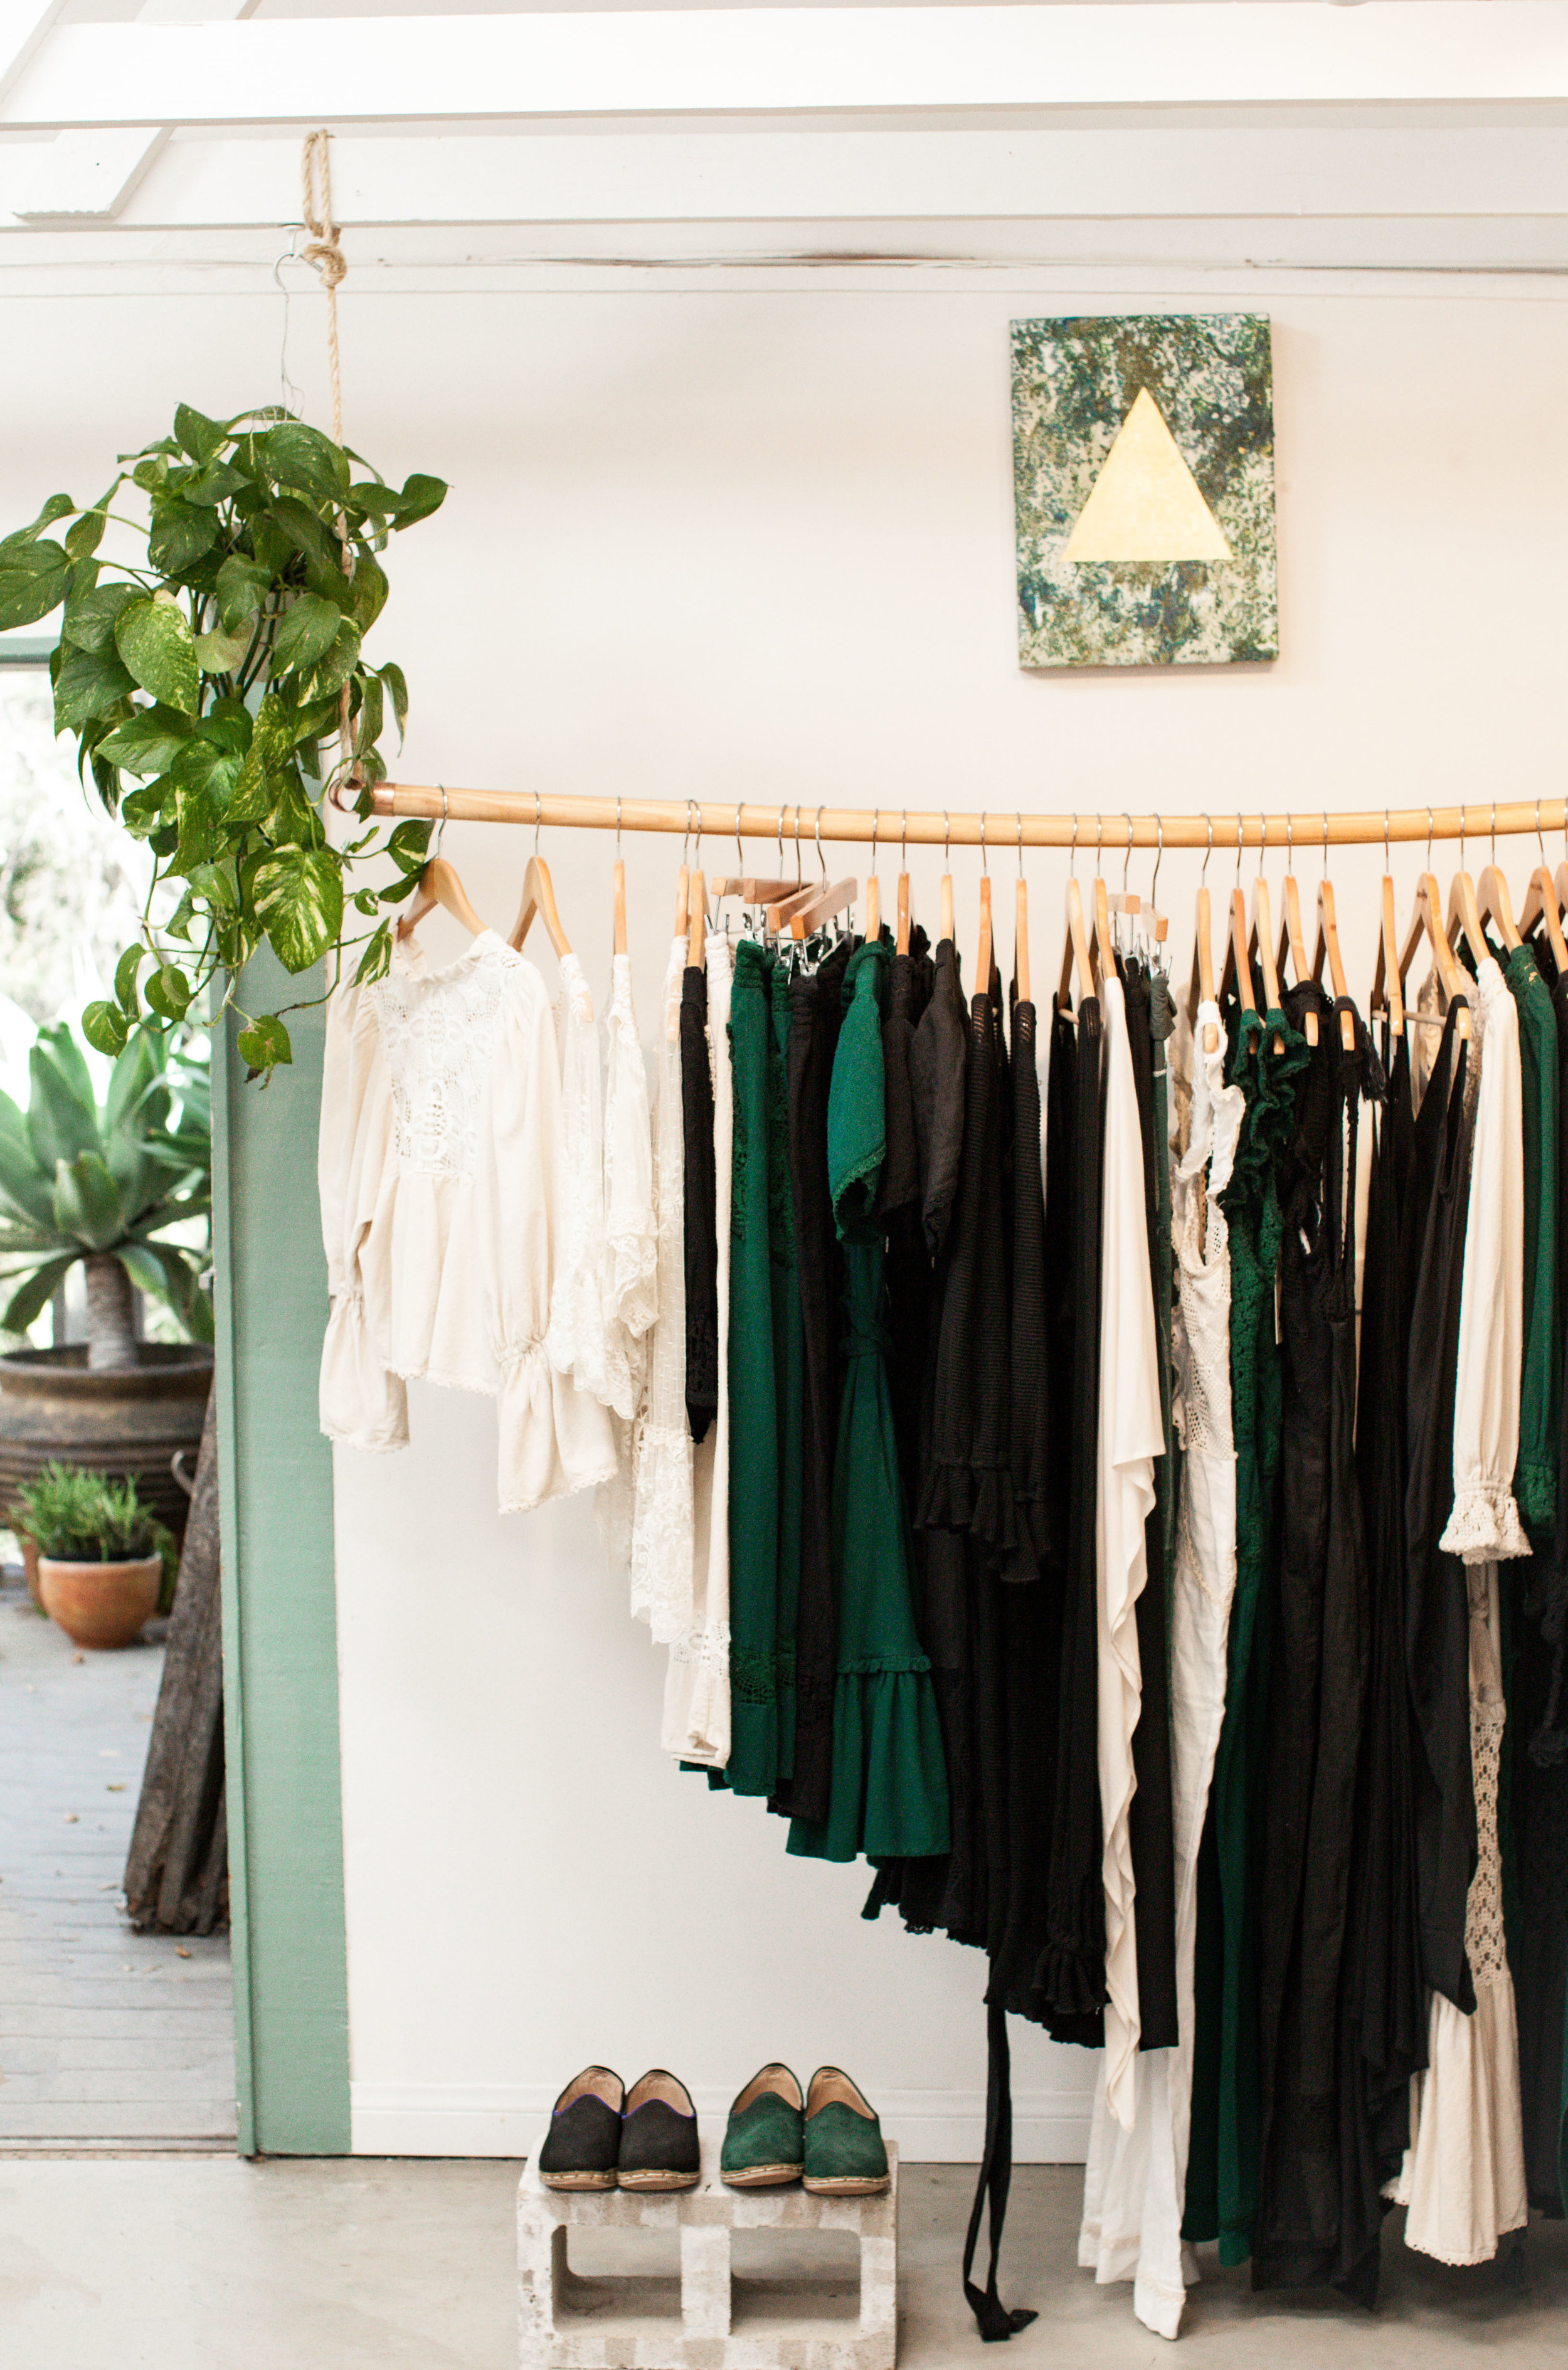 Clothes hanging at Moona Star Collective Topanga Store